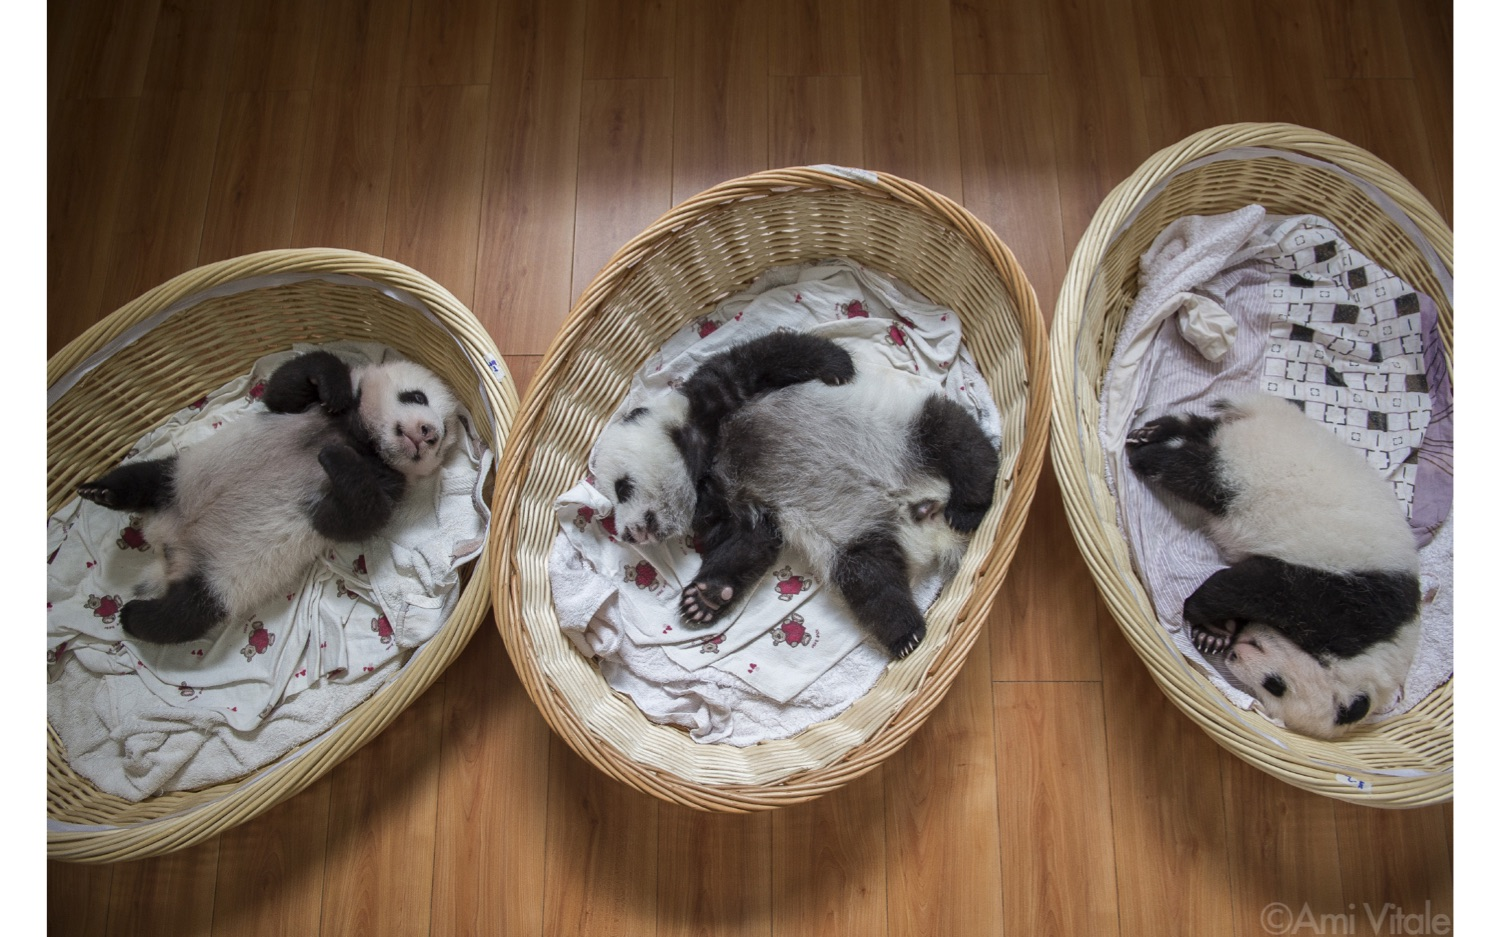 baby pandas in baskets from the book Panda Love by Ami Vitale